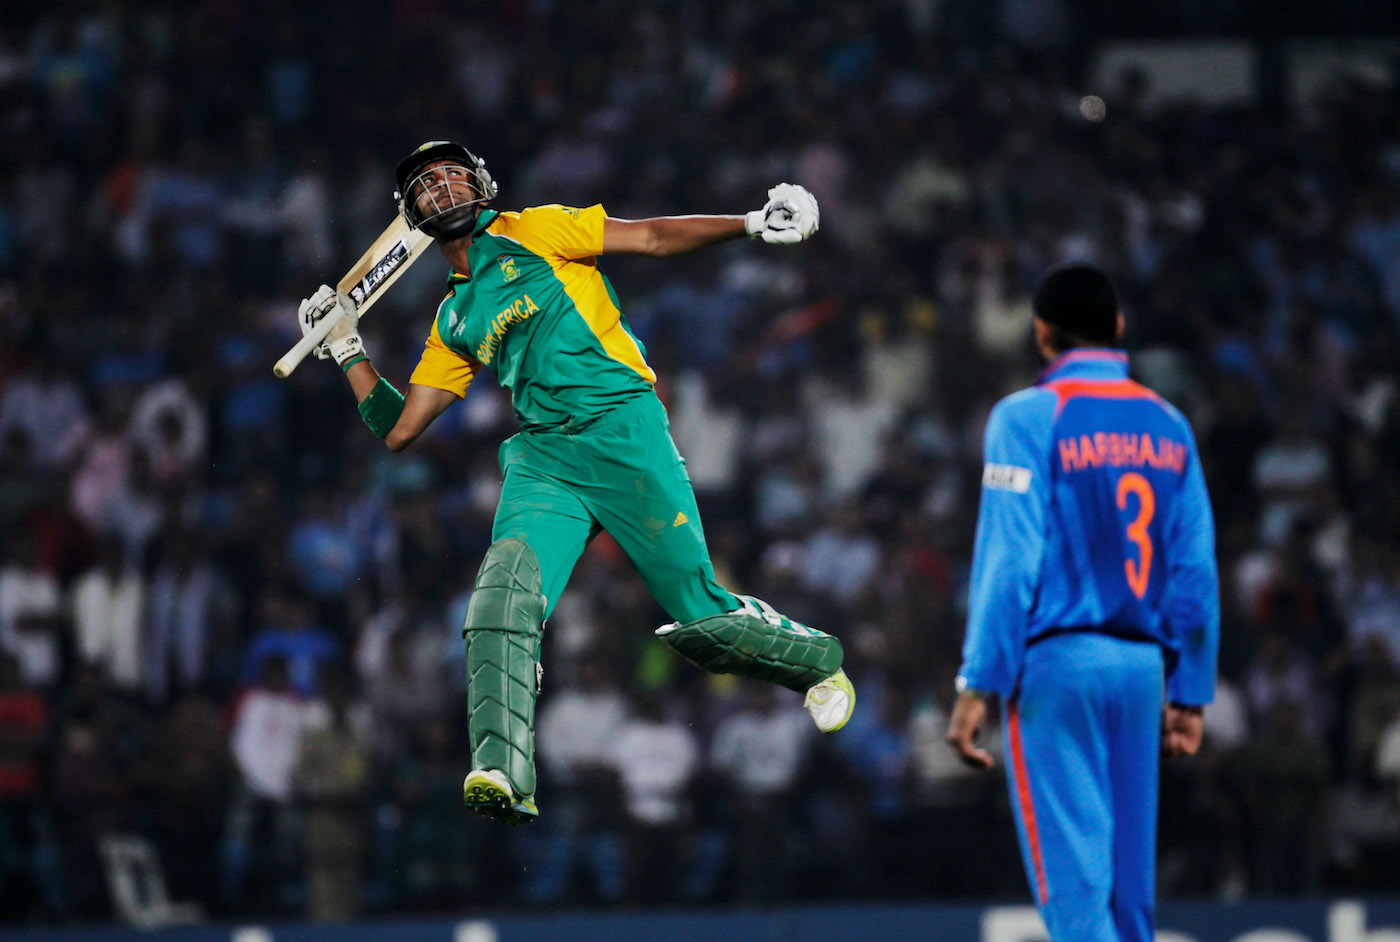 India's only defeat in the tournament came against South Africa, whom Robin Petersen took home in the last over